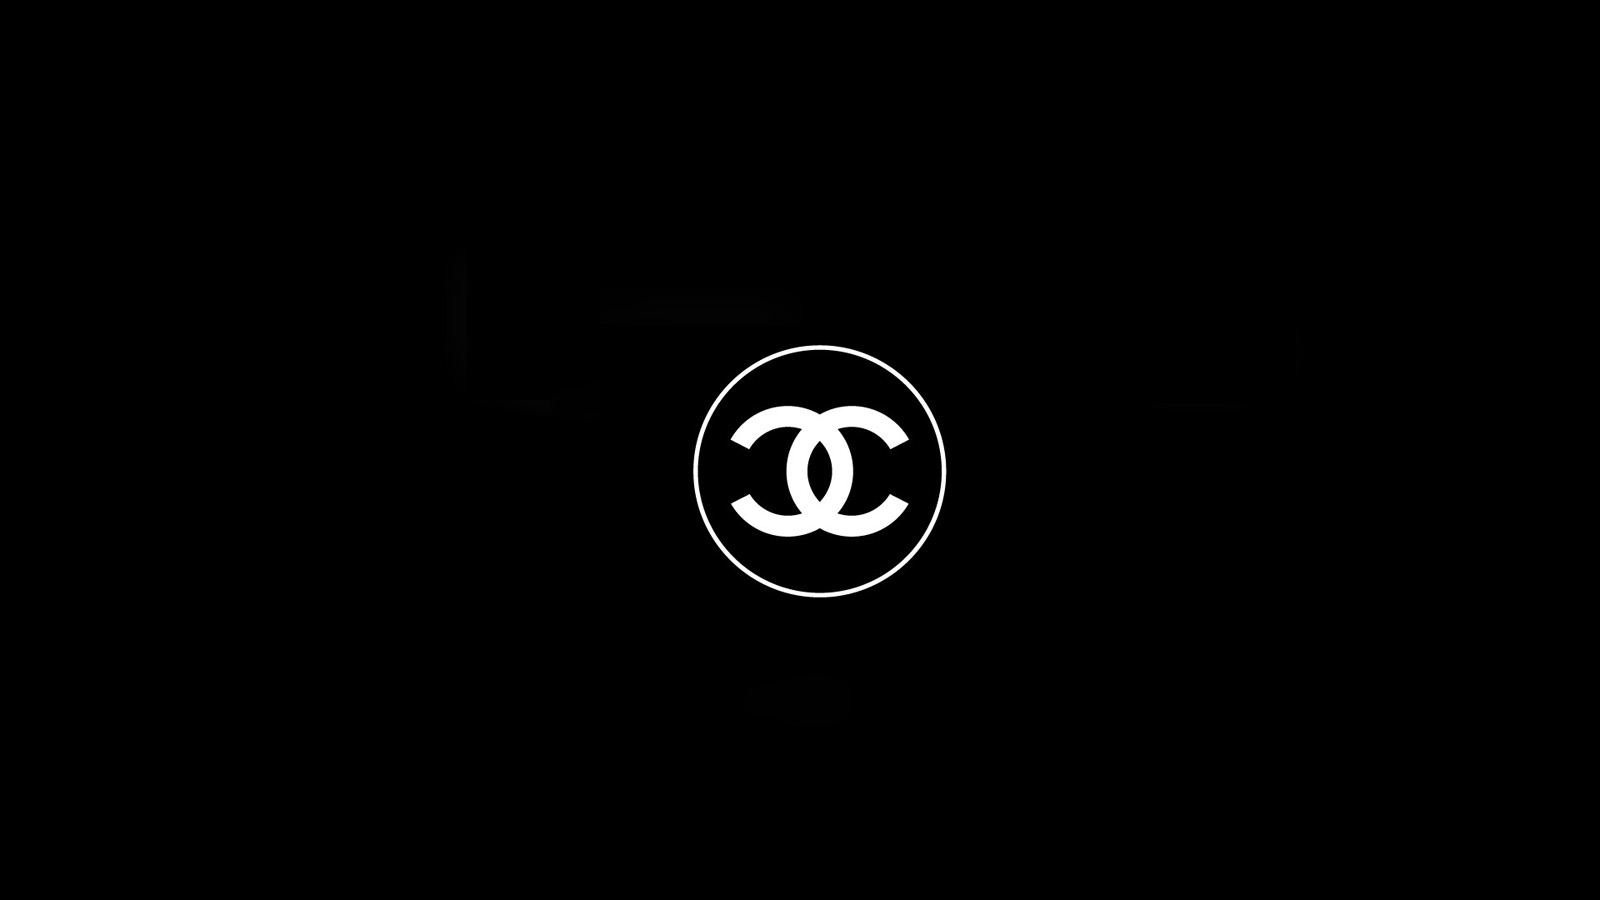 chanel logo wallpaper hd chanel desktop ahoodieahoodie Car Pictures 1600x900